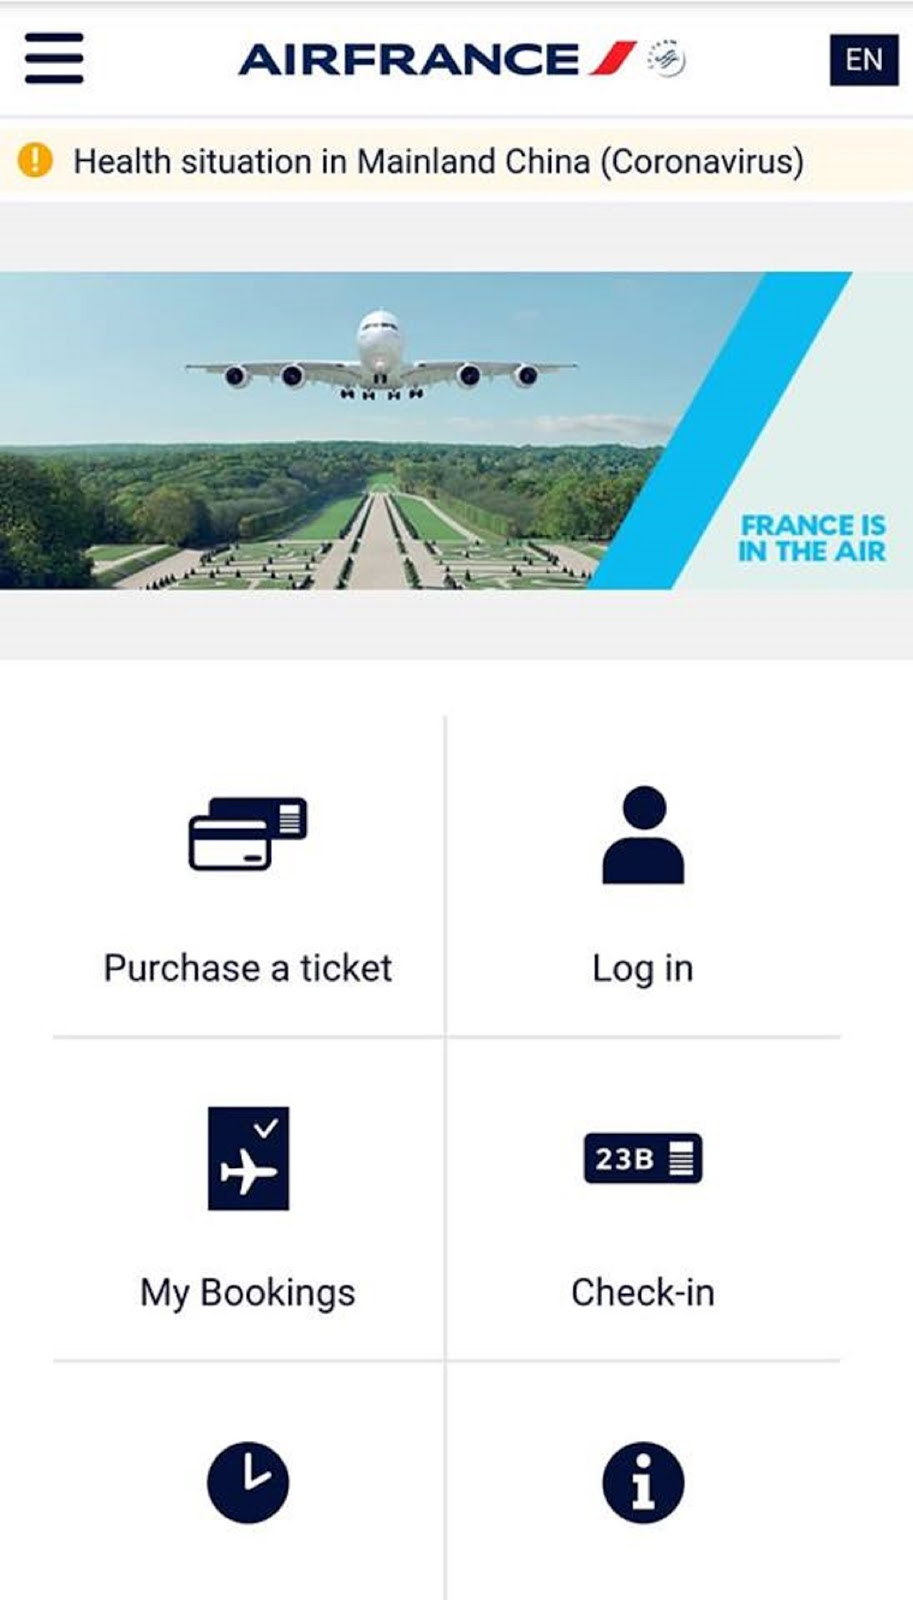 Image source: https://airfrance.com